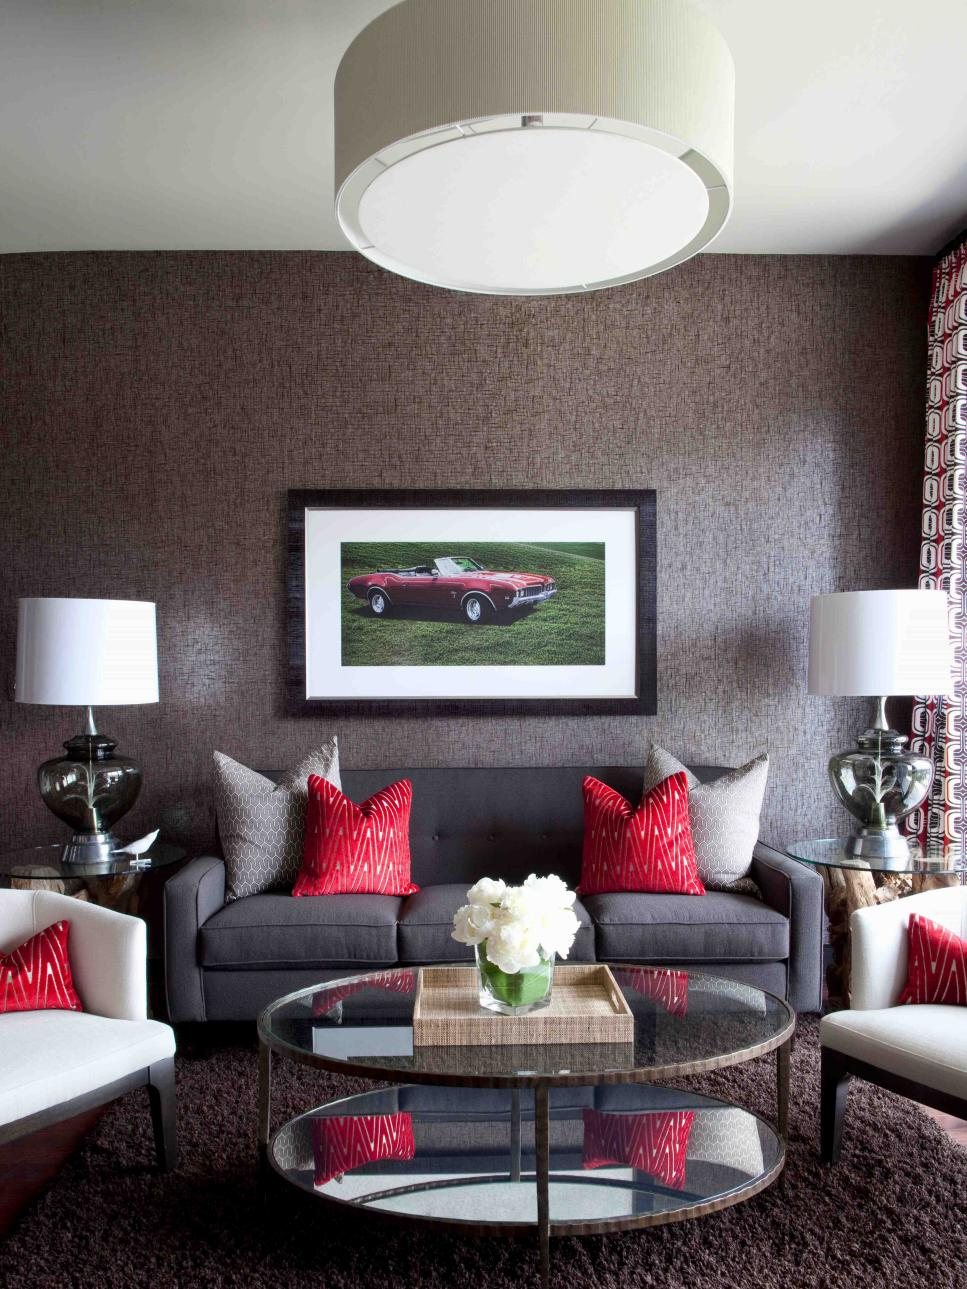 Decorating A Bachelor Pad Bedroom_3